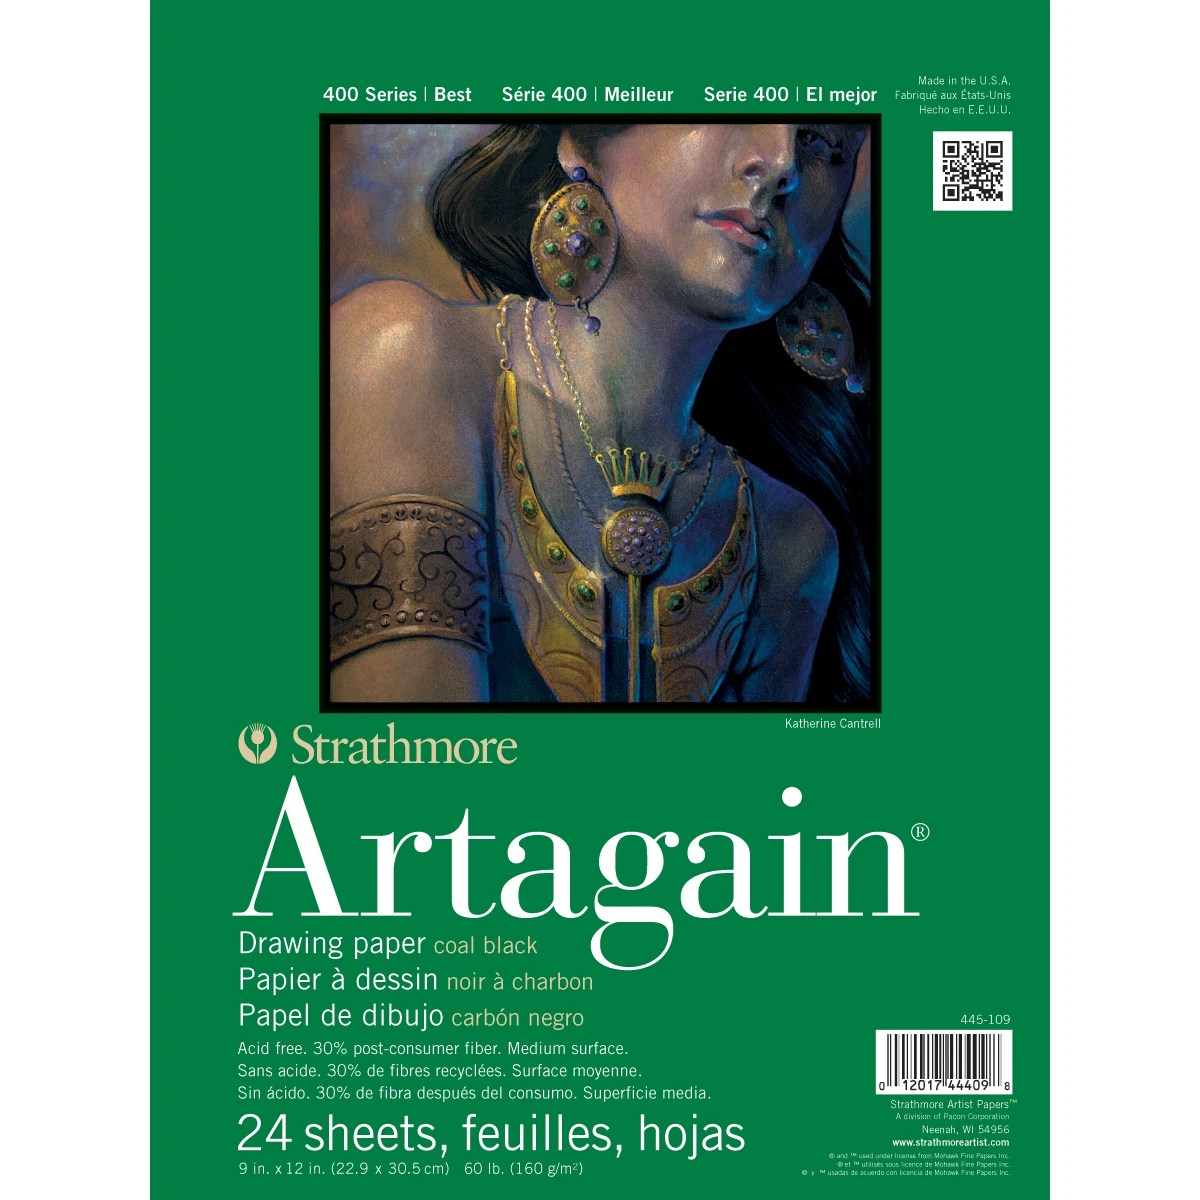 Strathmore Black Artagain Paper Pad 9 X12 24 Sheets Contains Pack